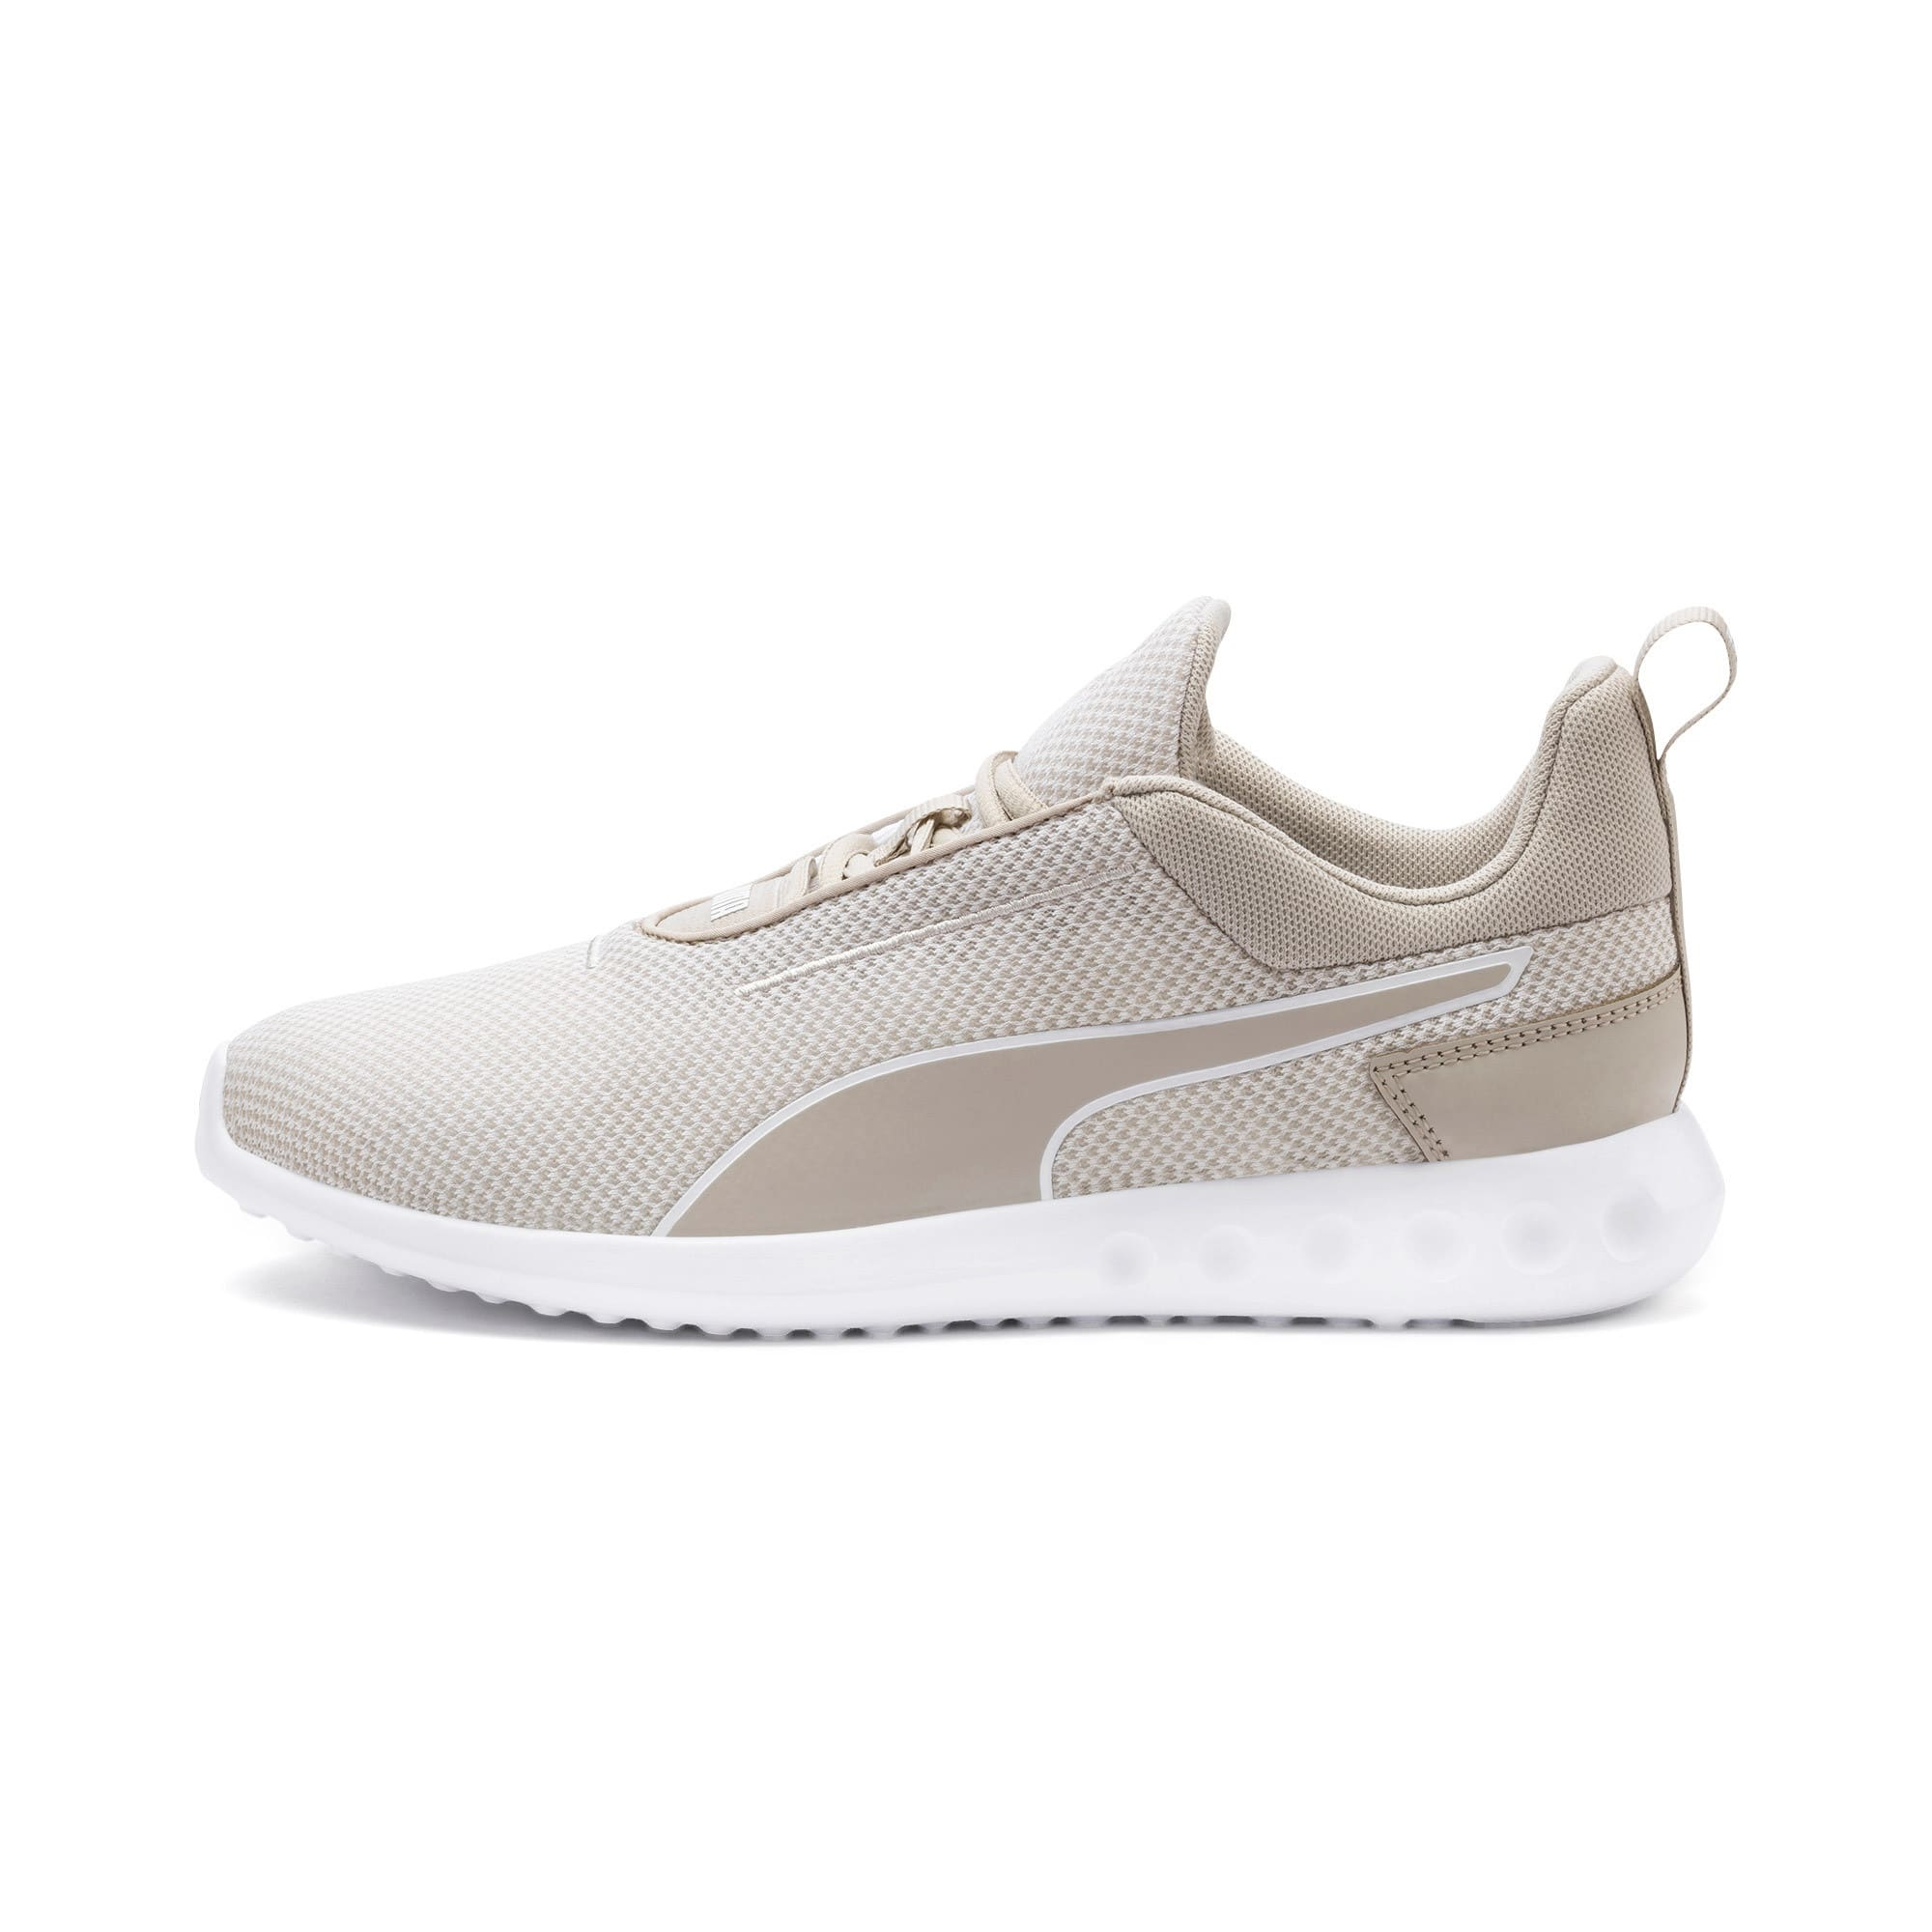 Thumbnail 1 of Carson 2 Concave Women's Training Shoes, Silver Gray-Puma White, medium